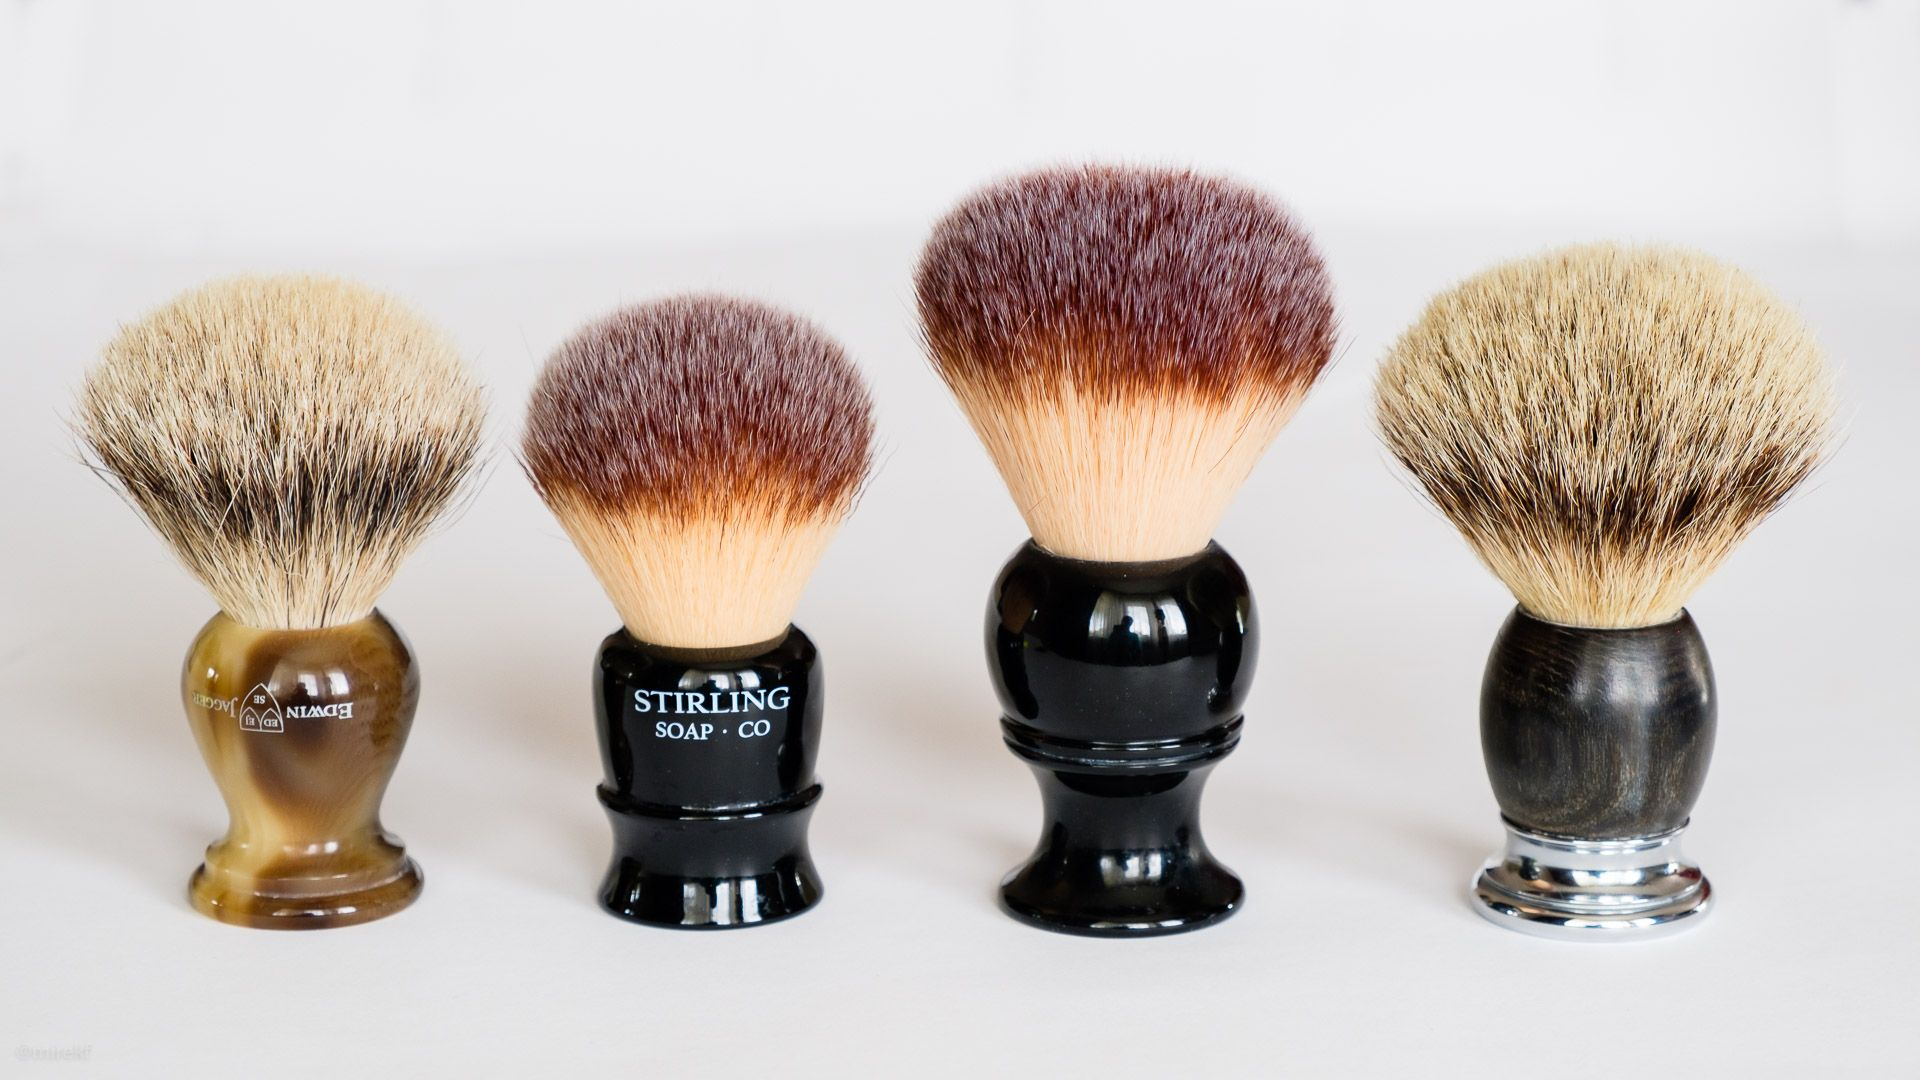 Porównanie pędzla do golenia Stirling Synthetic Shave Brush 22 mm (Li'l Brudder) z Mühle Sophist, Maggard 24 mm i Edwin Jagger Super Badger 22 mm